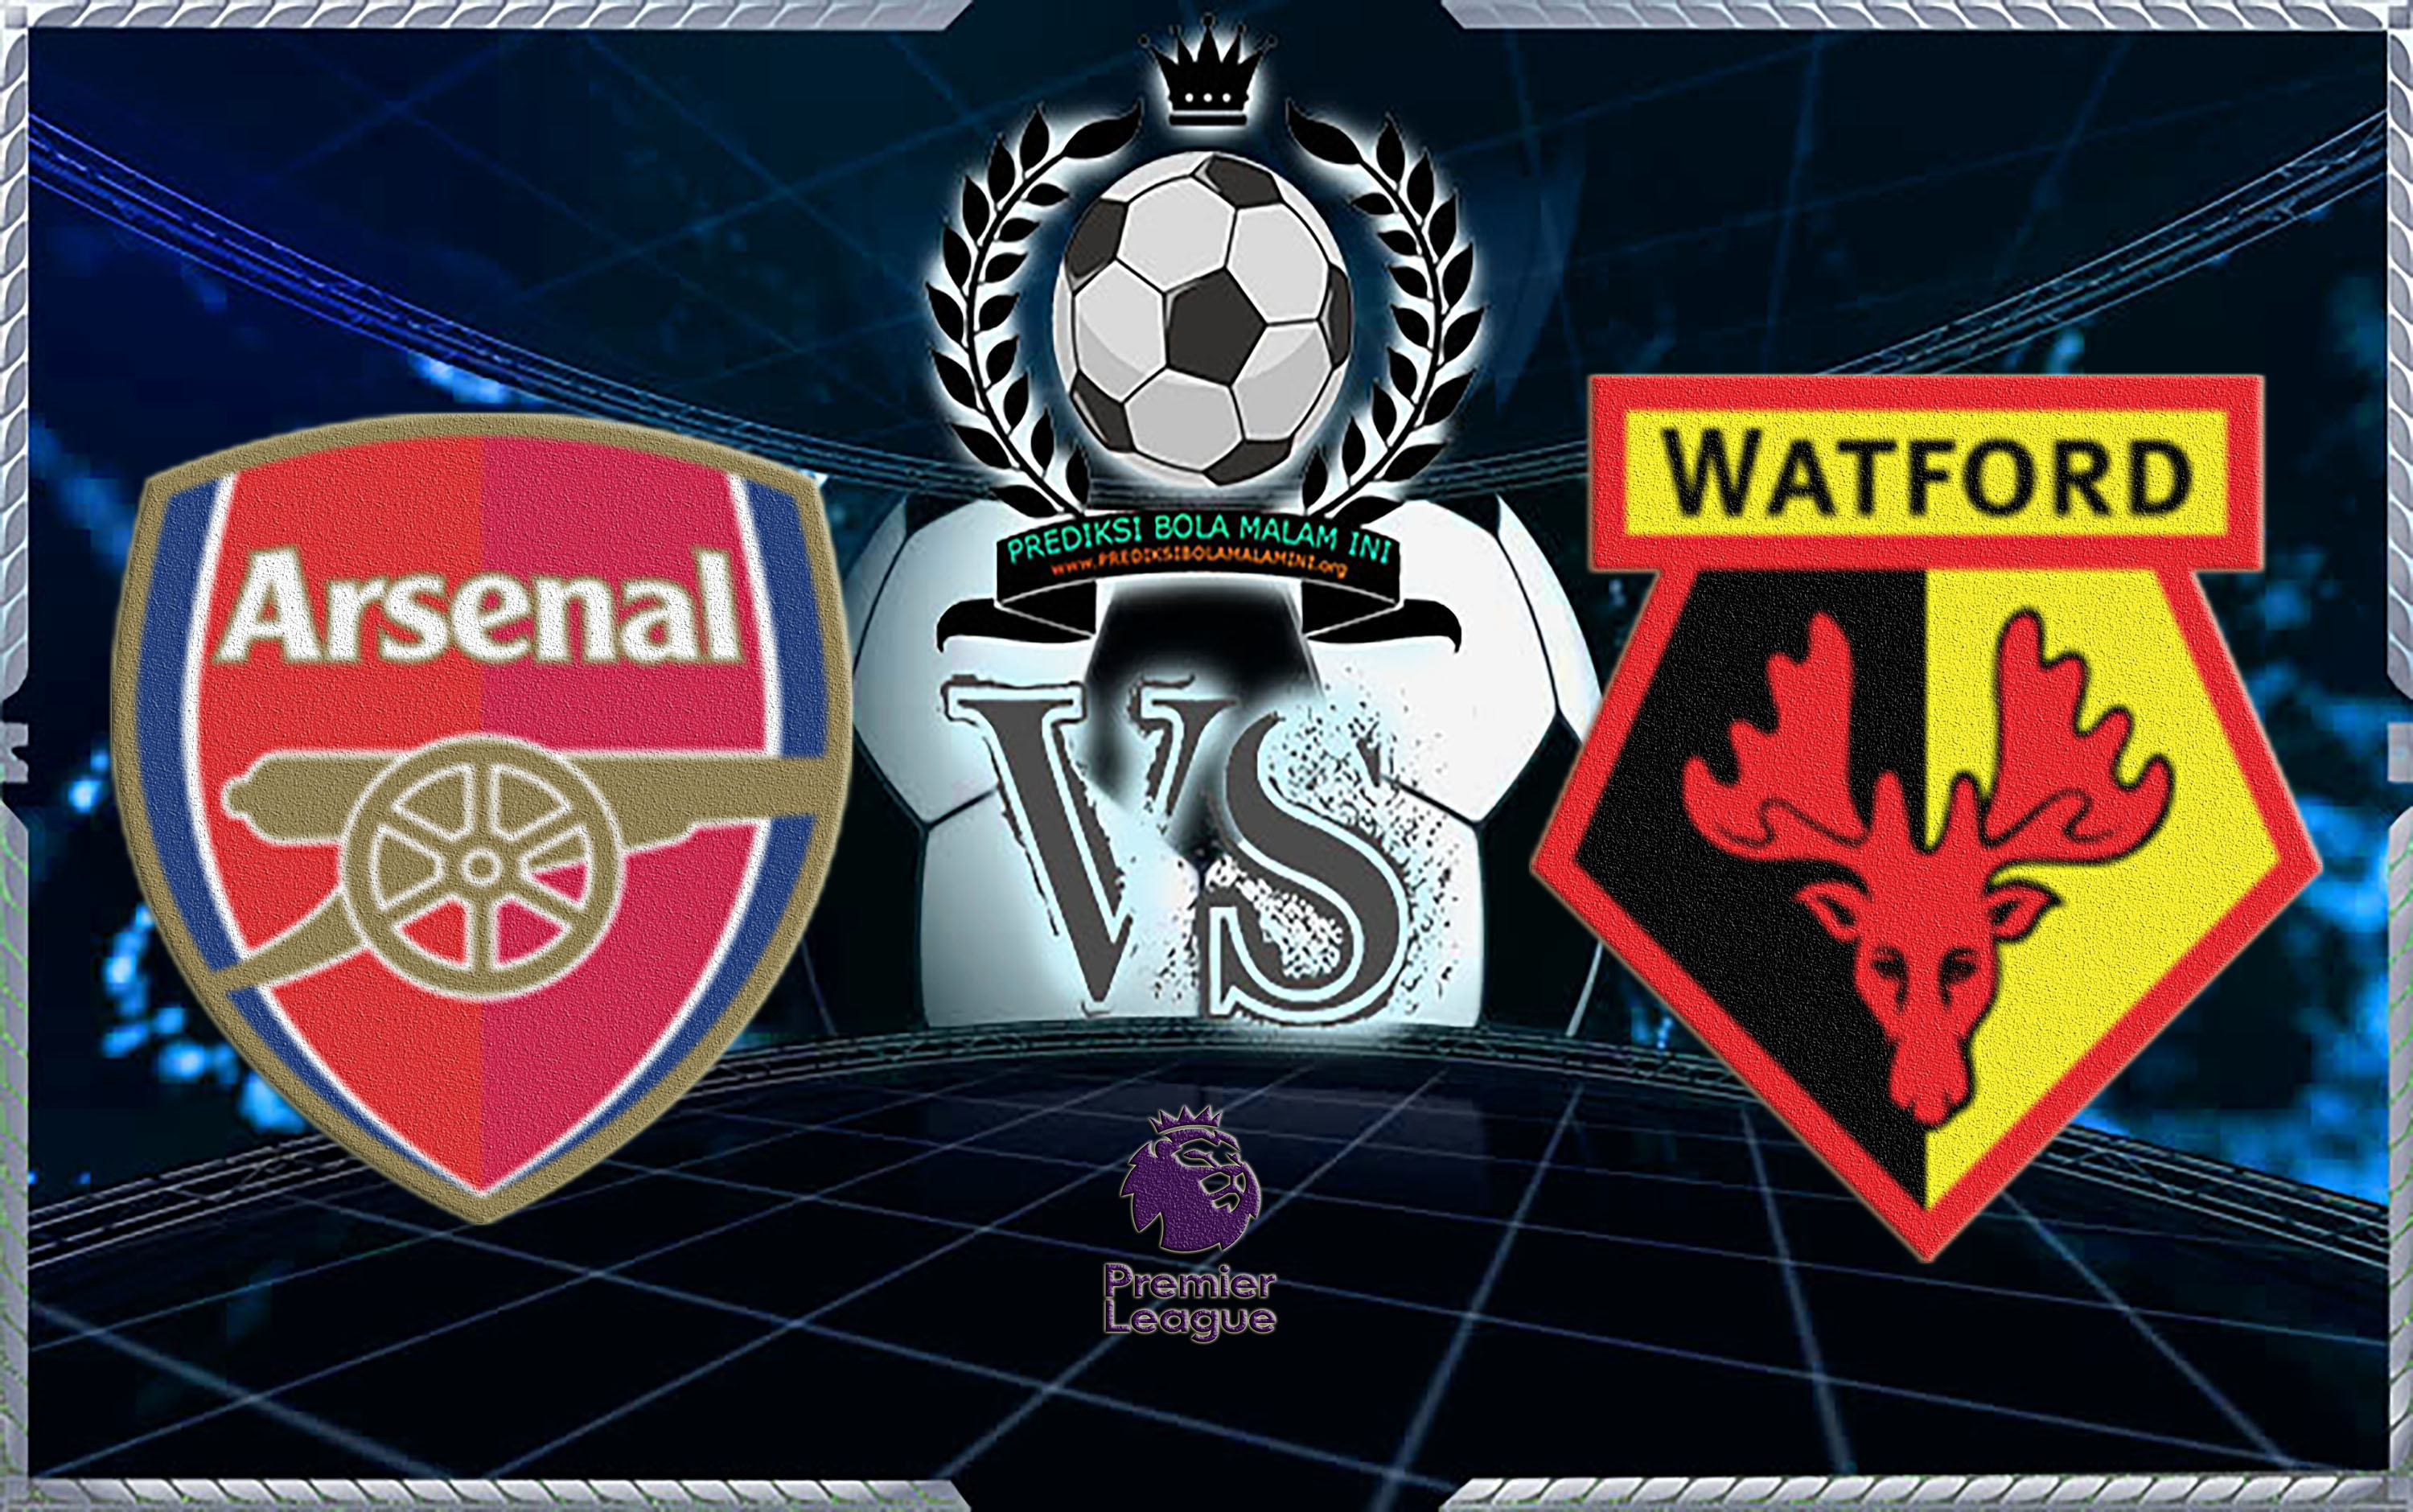 Arsenal VS Watford &quot;width =&quot; 640 &quot;height =&quot; 401 &quot;/&gt; </p> <p><span style=